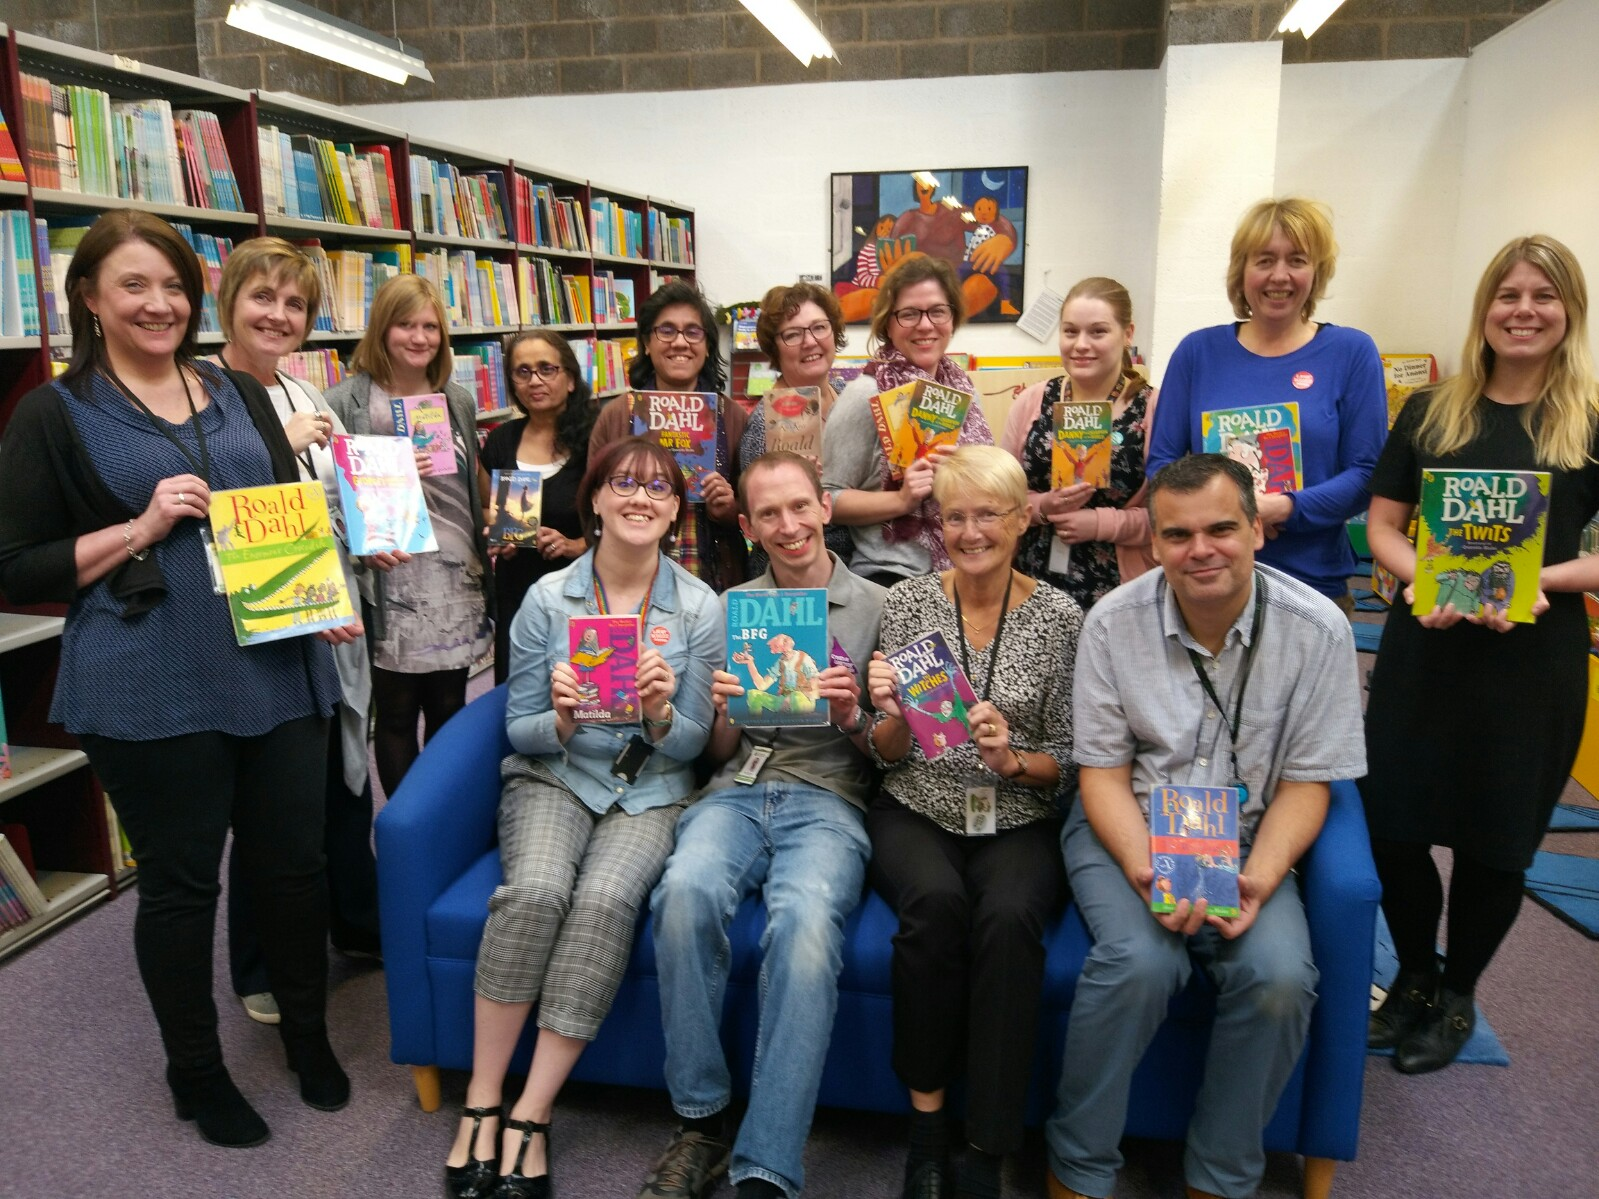 Library staff holding Roald Dahl books